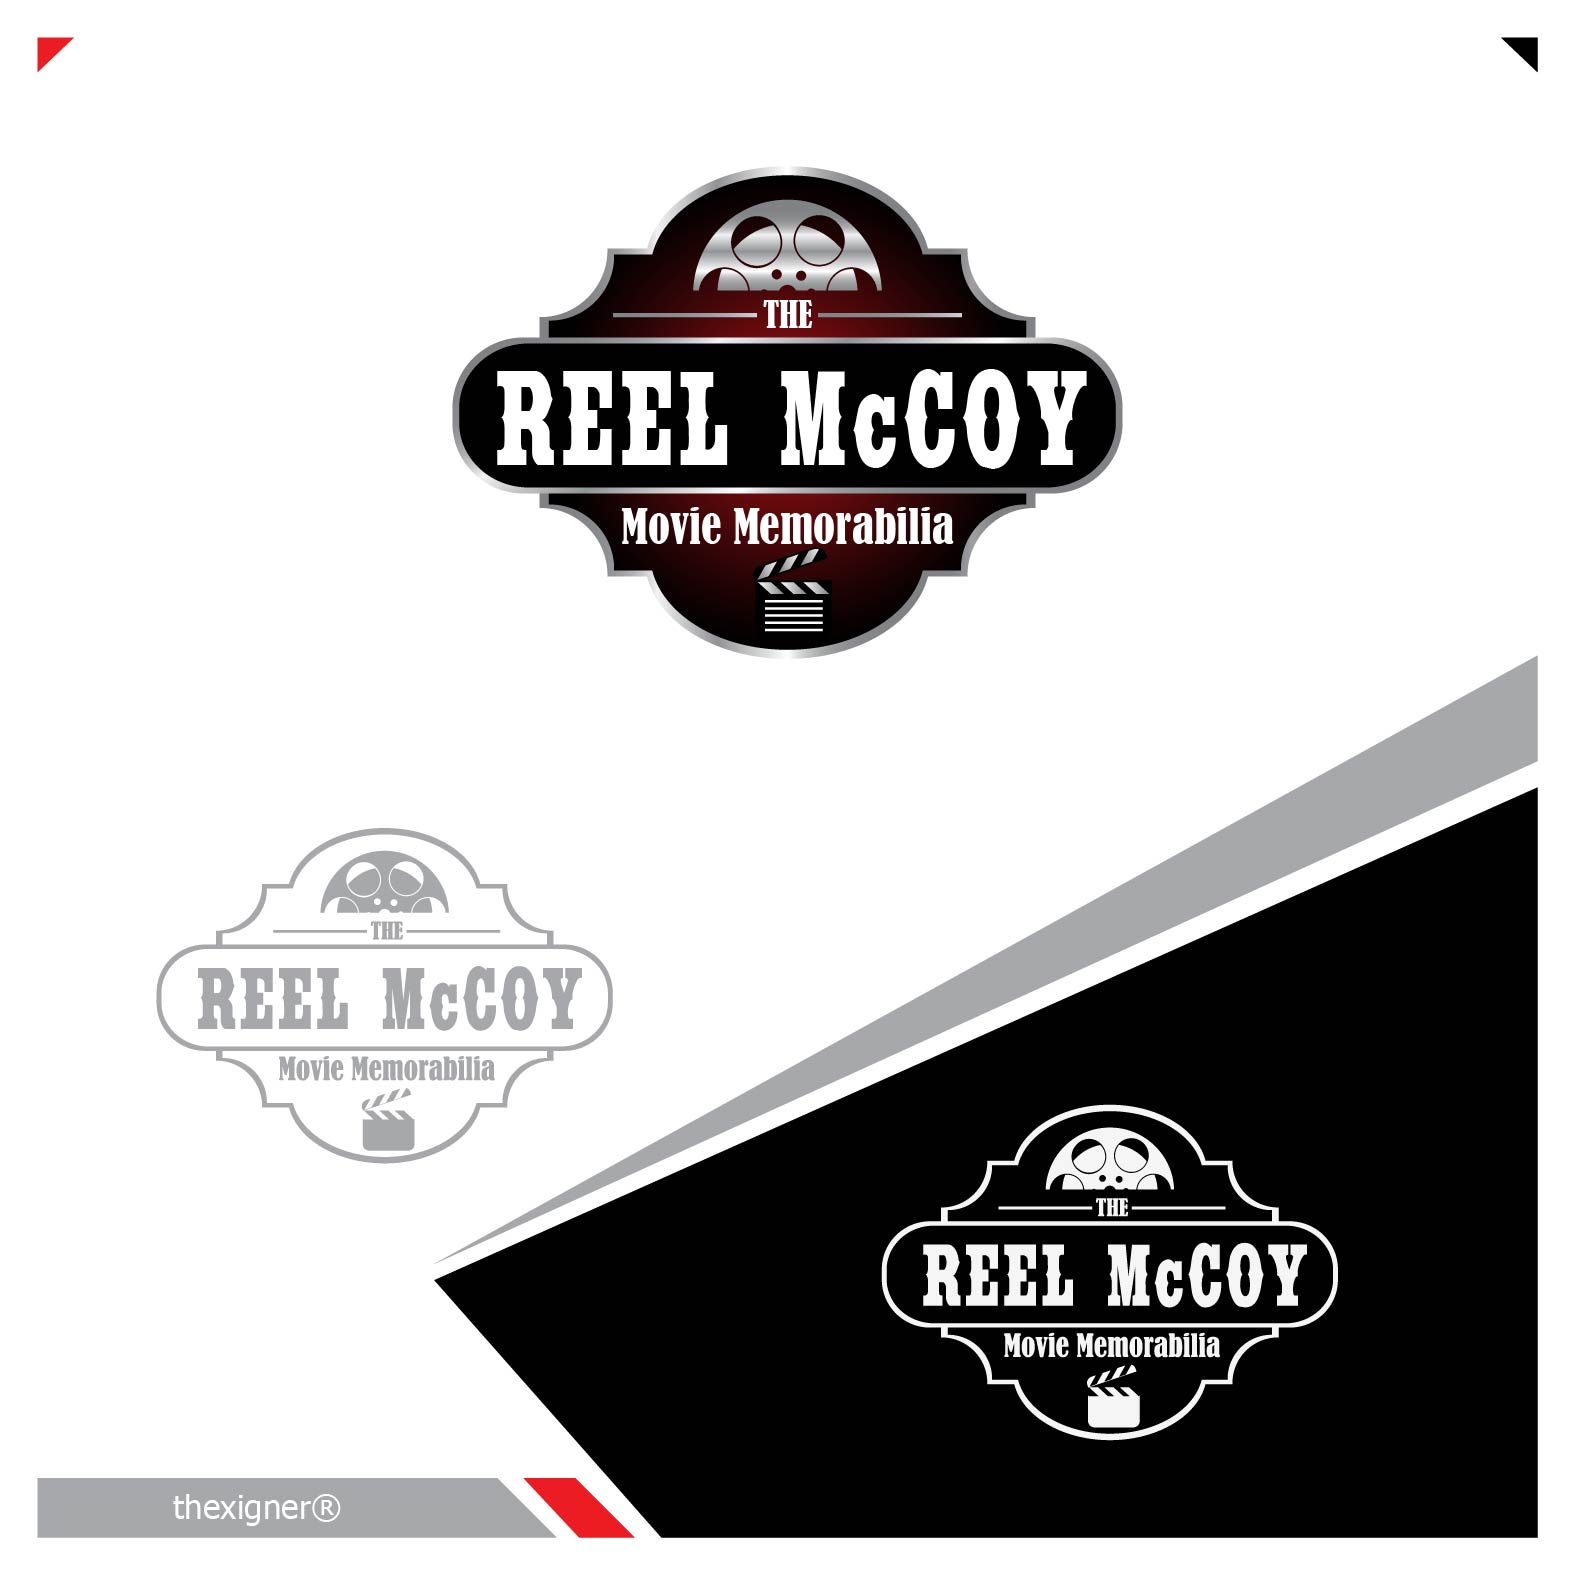 Logo Design by lagalag - Entry No. 20 in the Logo Design Contest Unique Logo Design Wanted for The Reel McCoy Movie Memorabilia.